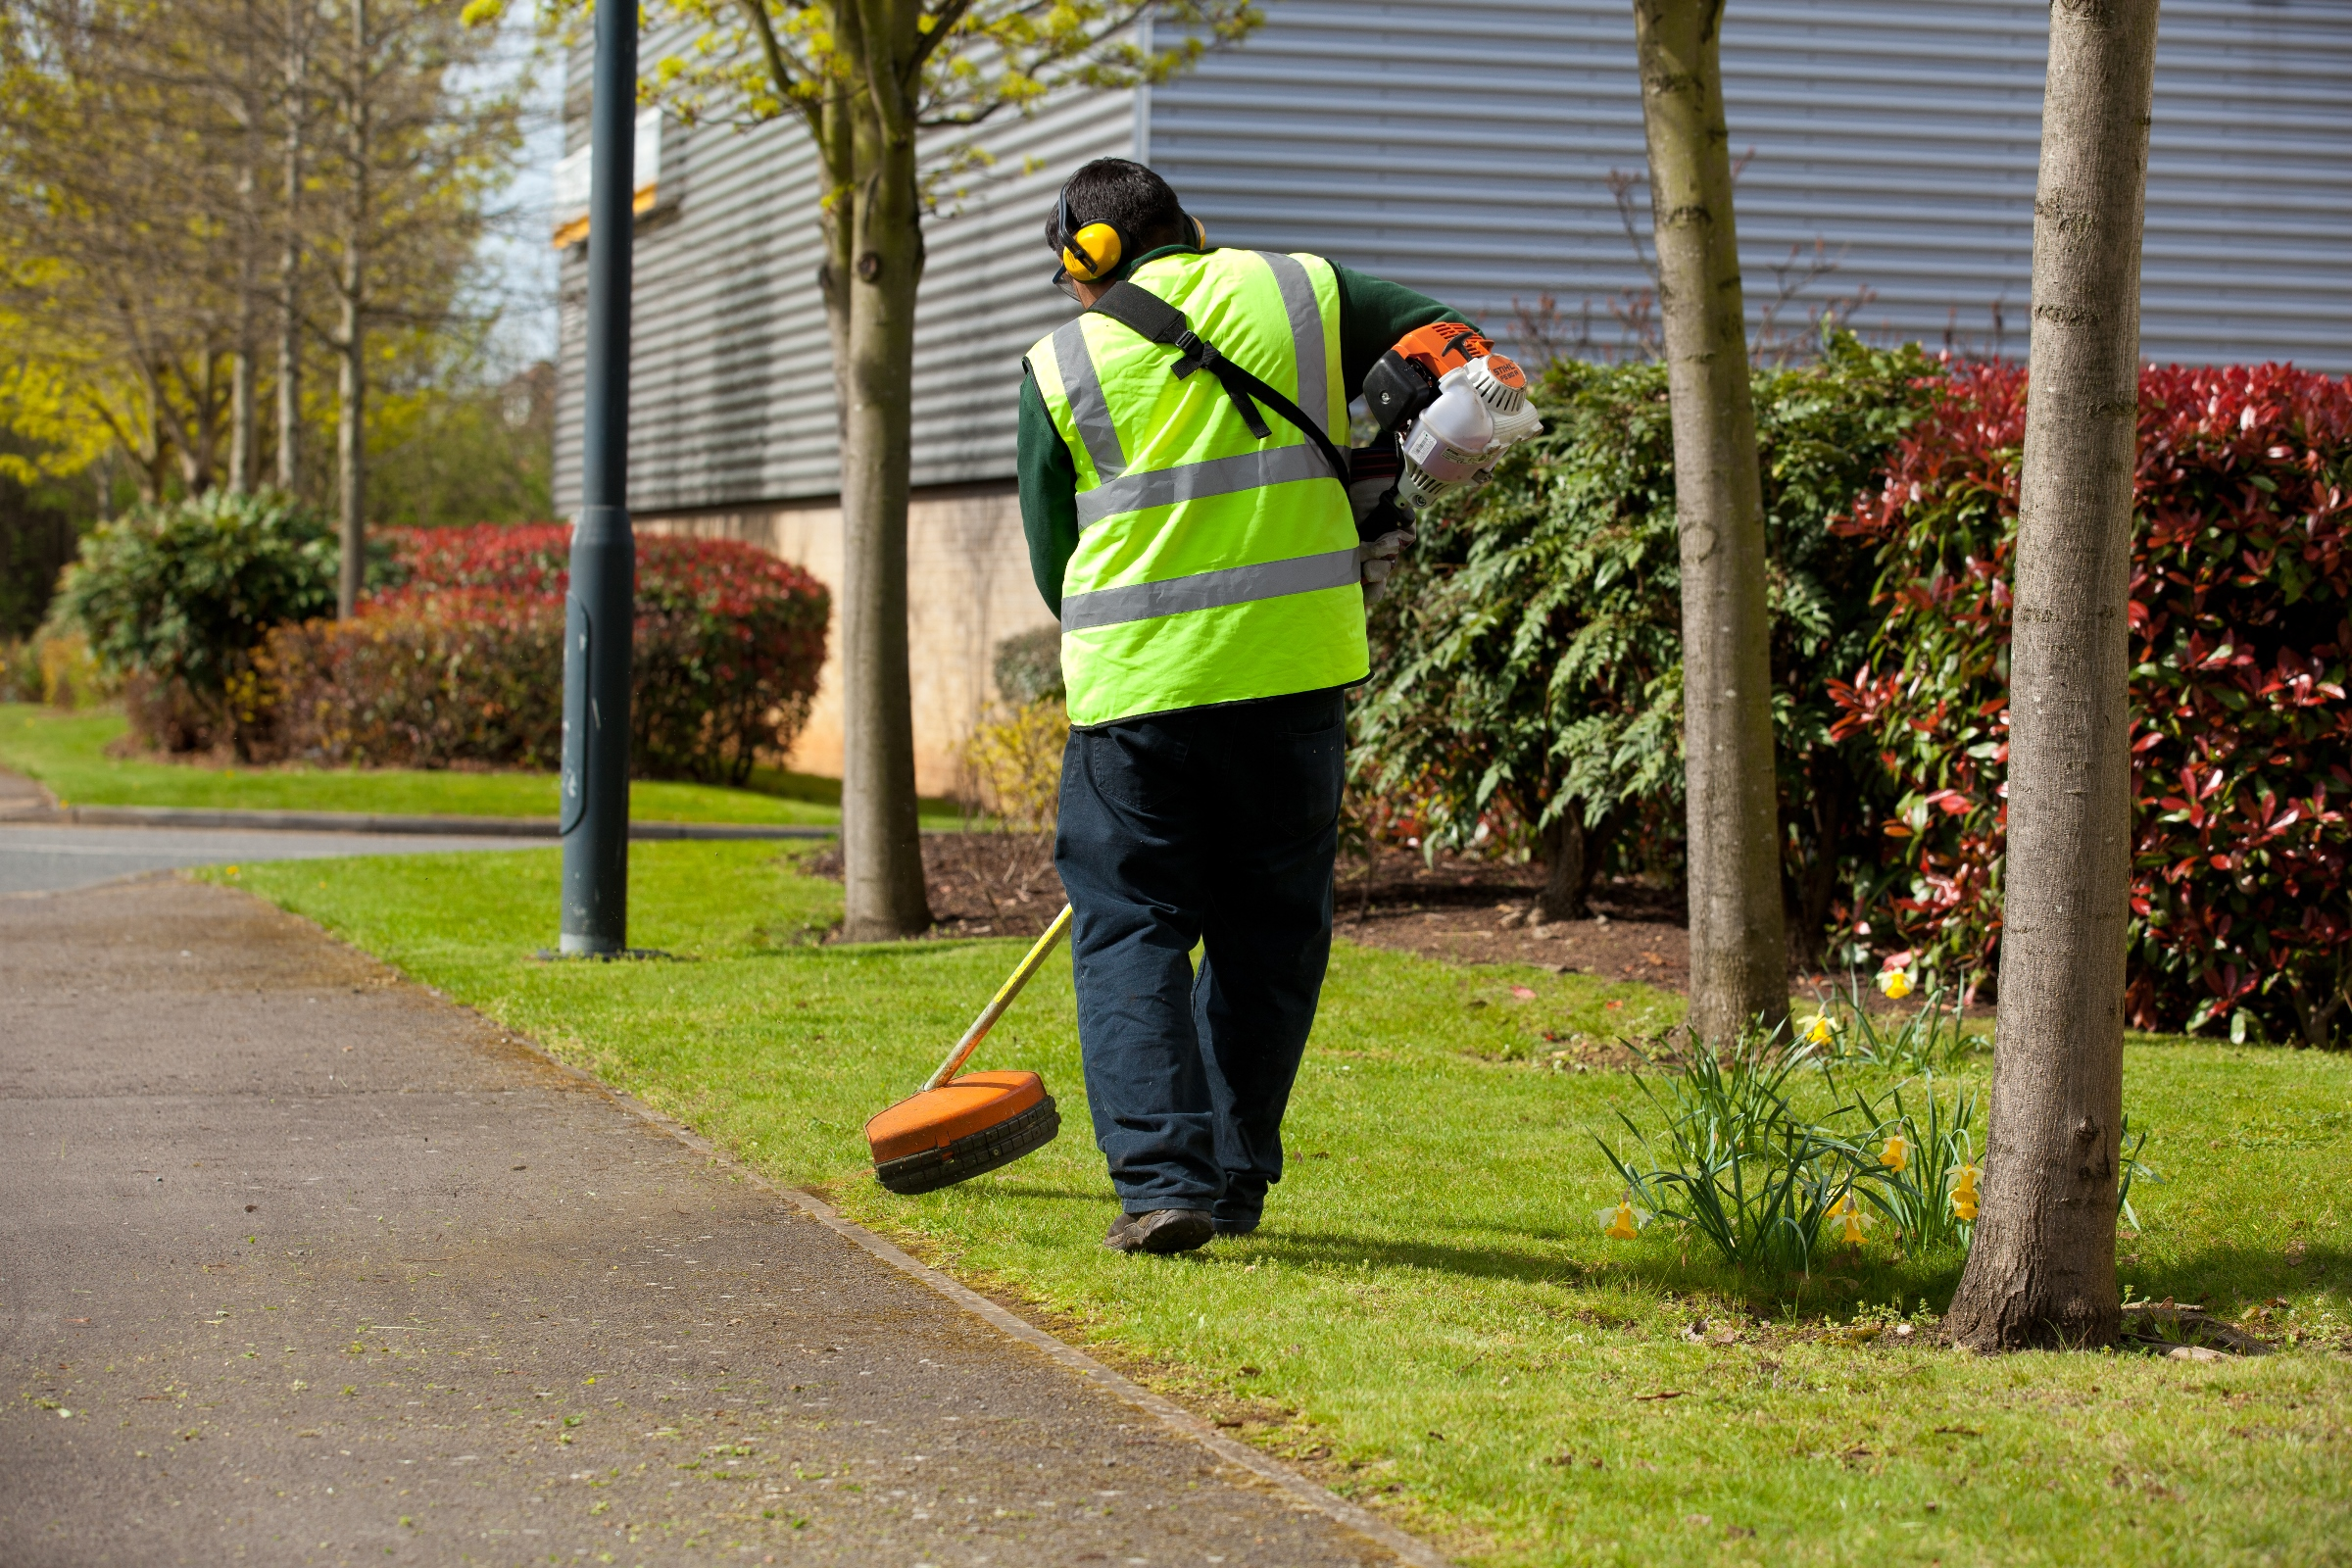 exterior-grounds-maintenance-landscaping.JPG